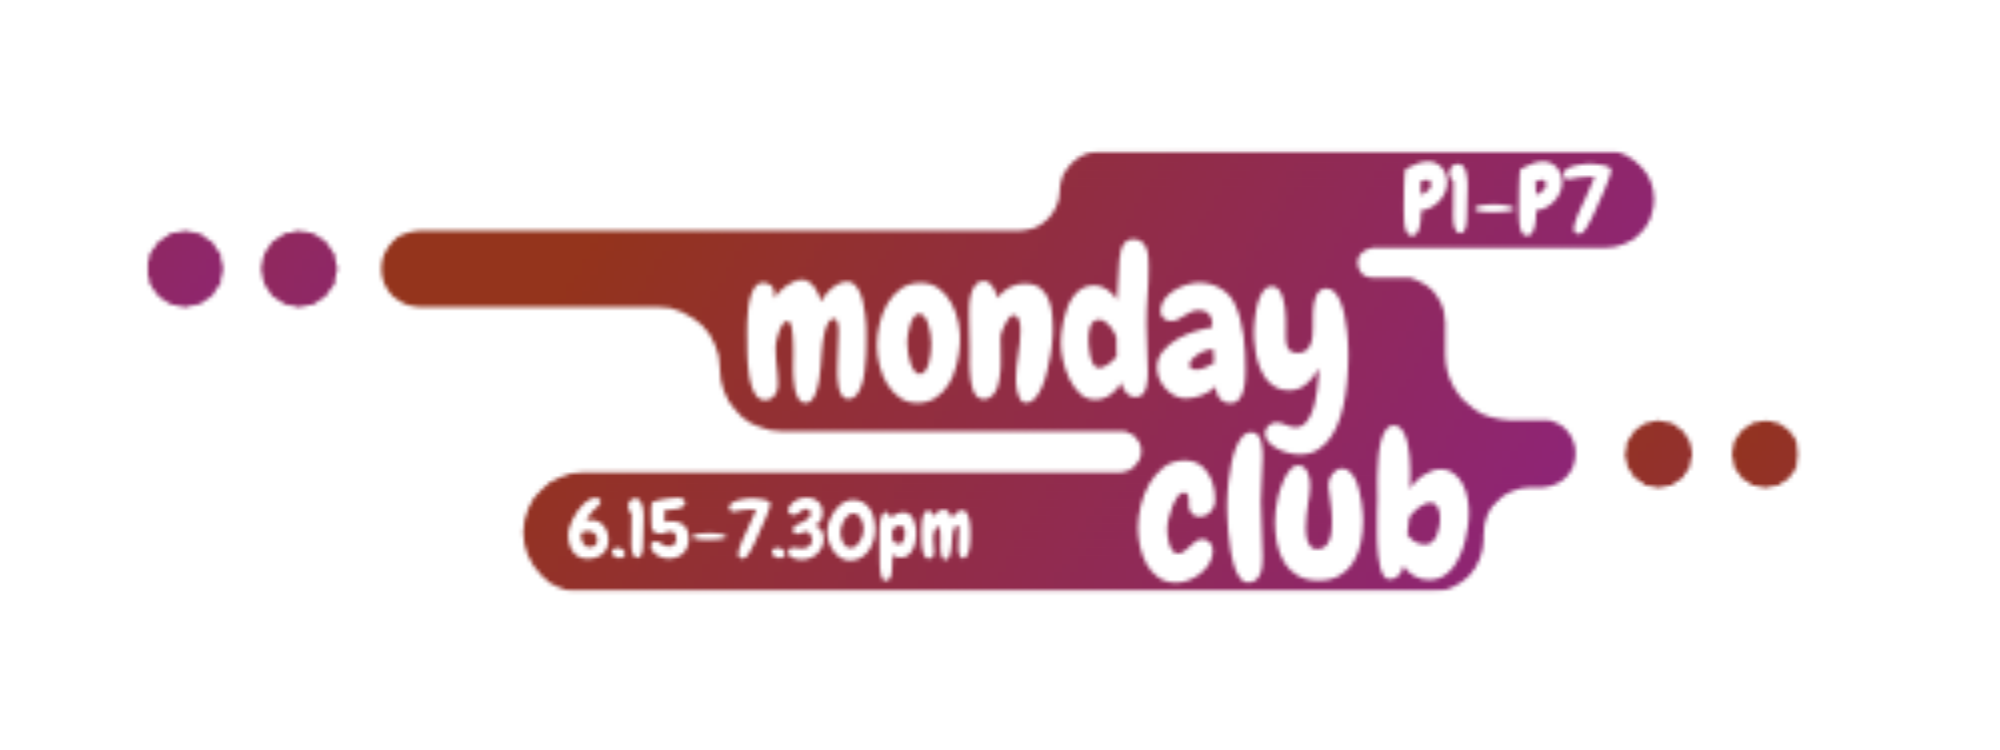 monday club logo 4